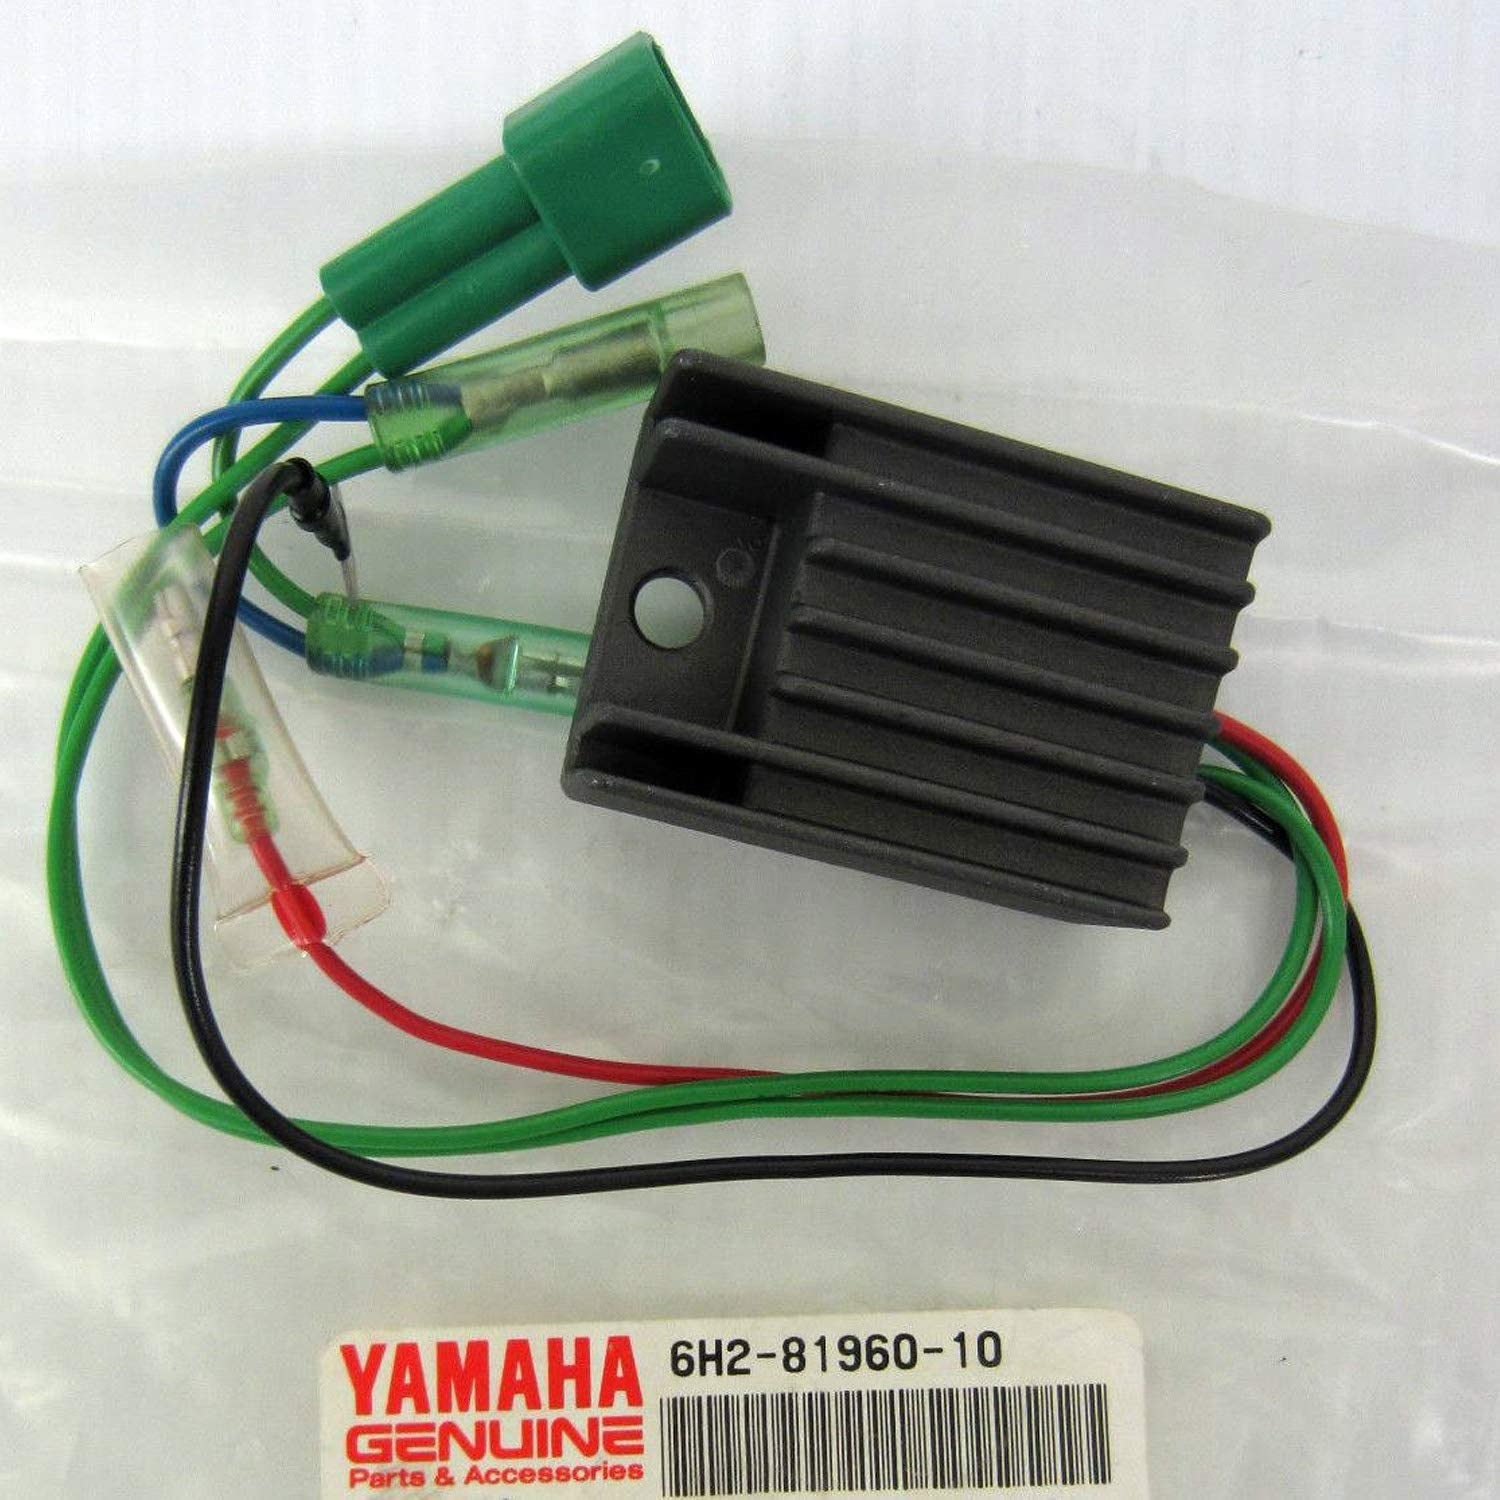 Yamaha OEM Voltage Rectifier /& Regulator 6H2-81960-10-00; 6H2819601000